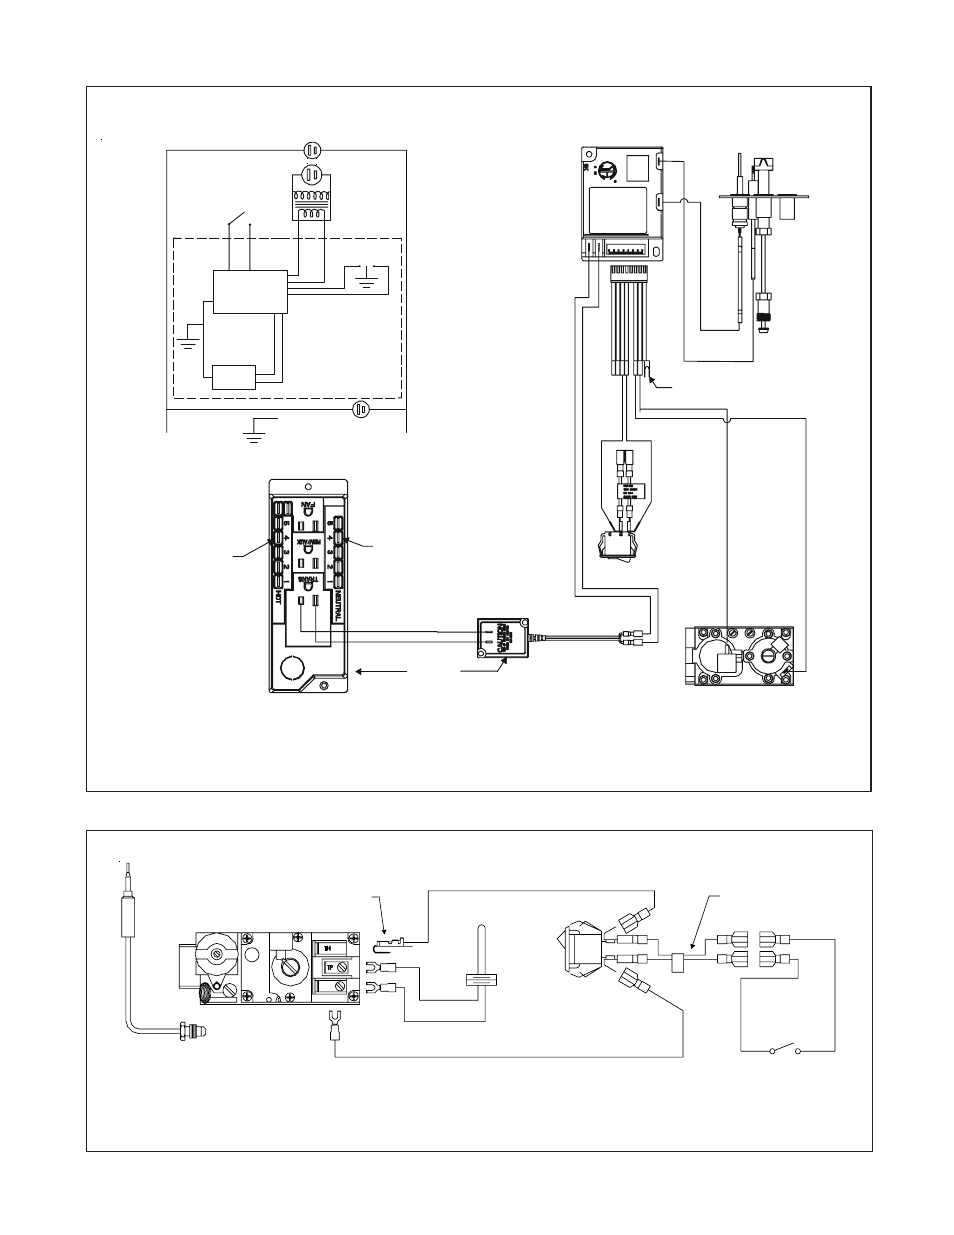 Figure 10  Standing Pilot Ignition Wiring Diagram